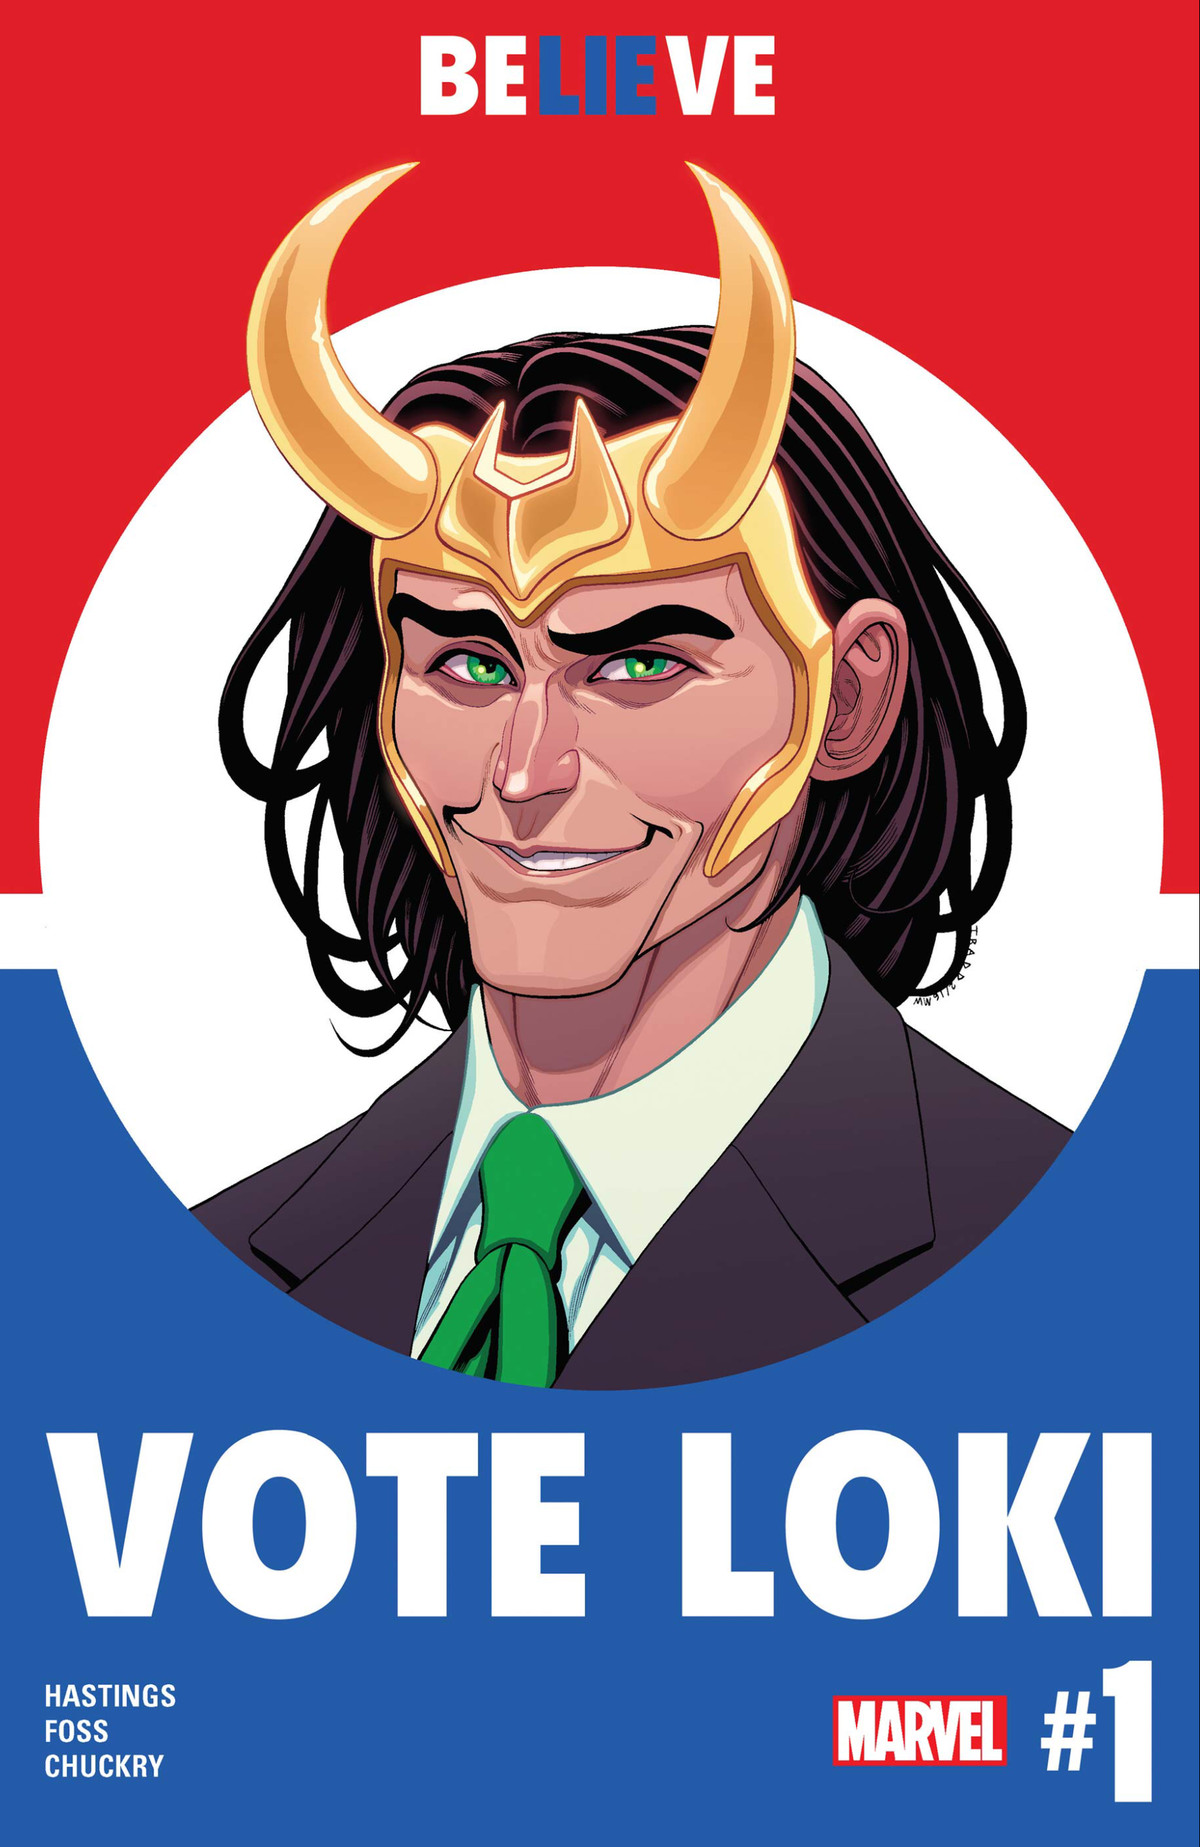 Loki, wearing his crown and a suit with a green tie, smiles cannily at the viewer on a red and blue campaign poster proclaiming VOTE LOKI, on the cover of Vote Loki, Marvel Comics (2016).